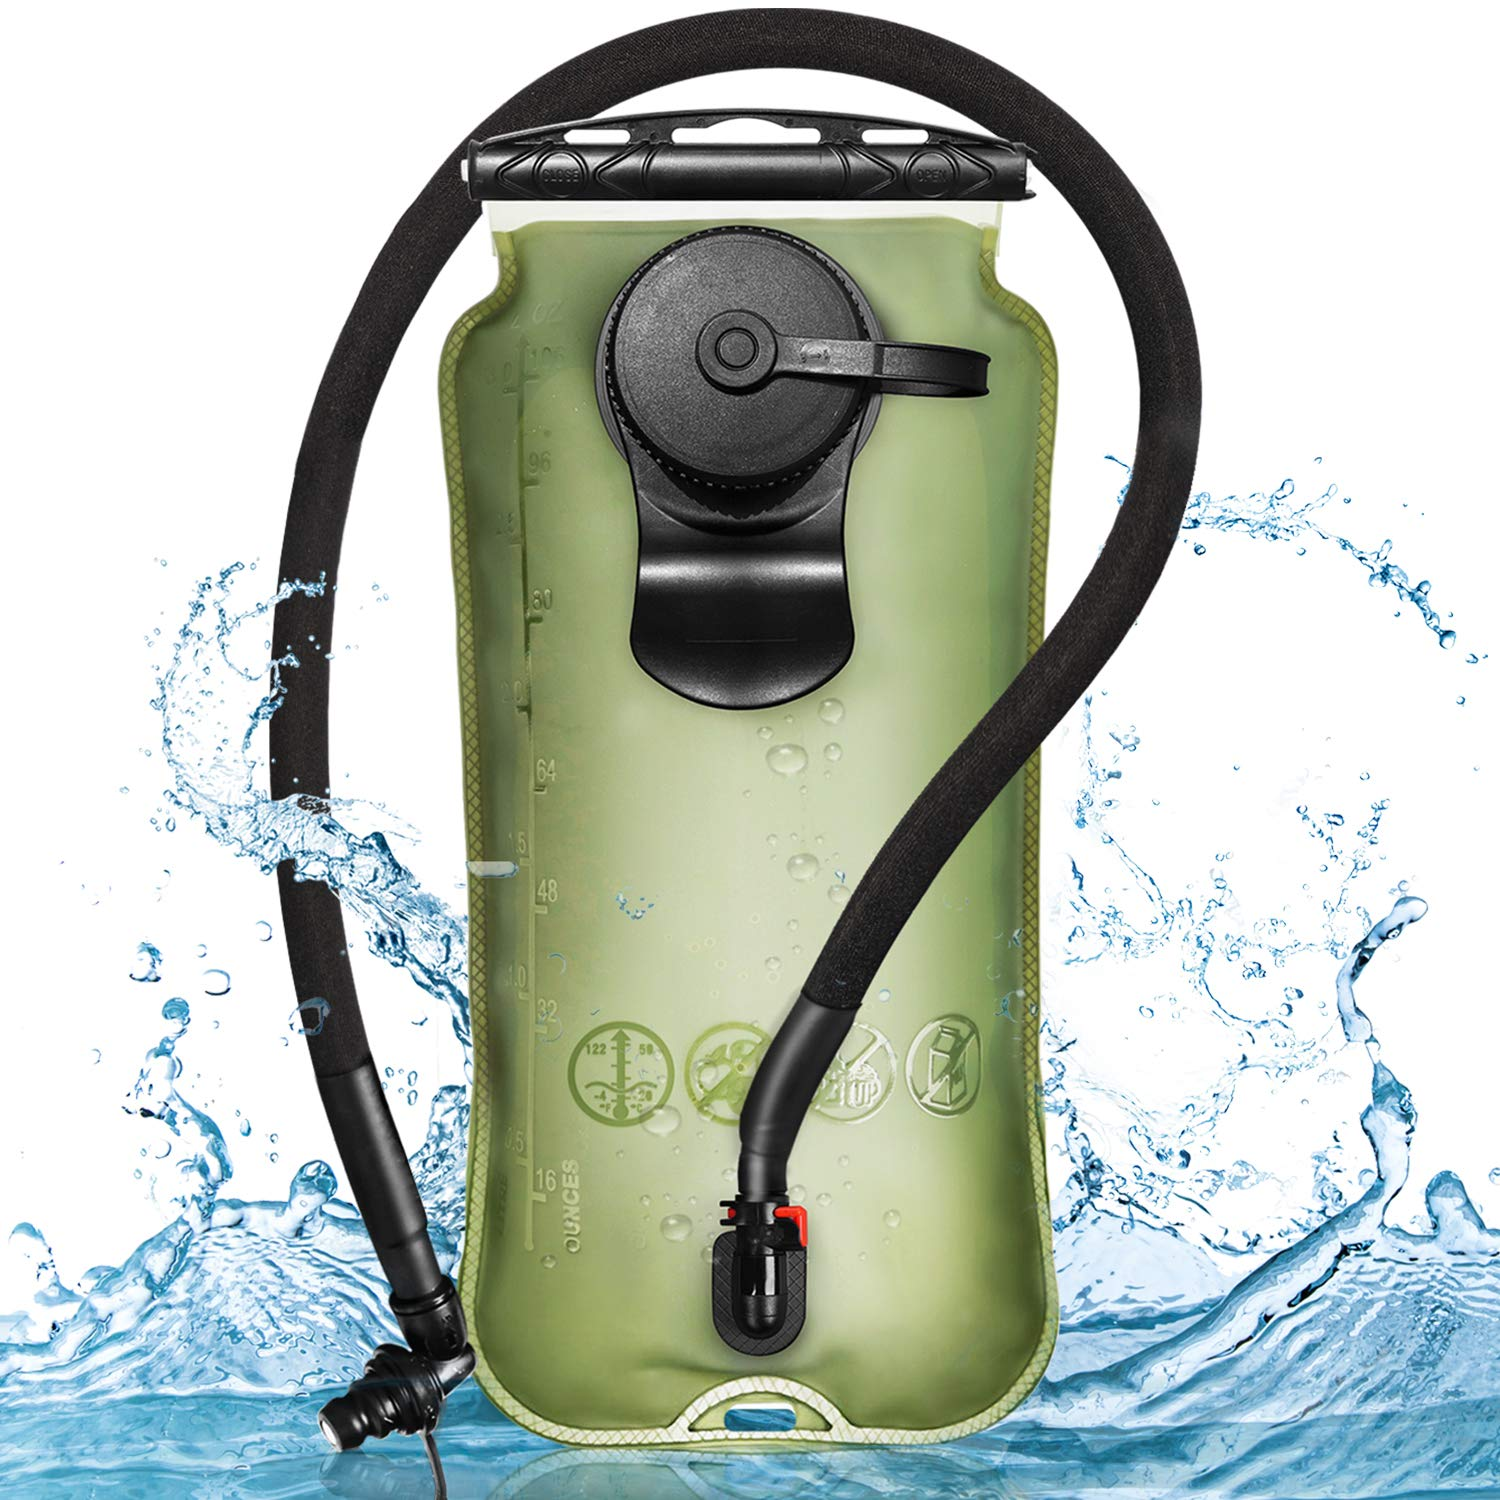 Leader Accessories Hydration Bladder Green 3 Liter Water Reservoir Water Bladder Hydration Pack Bladder FDA Approved Tasteless and BPA-Free TPU Material Large Opening Quick Release Tube (3L) by Leader Accessories